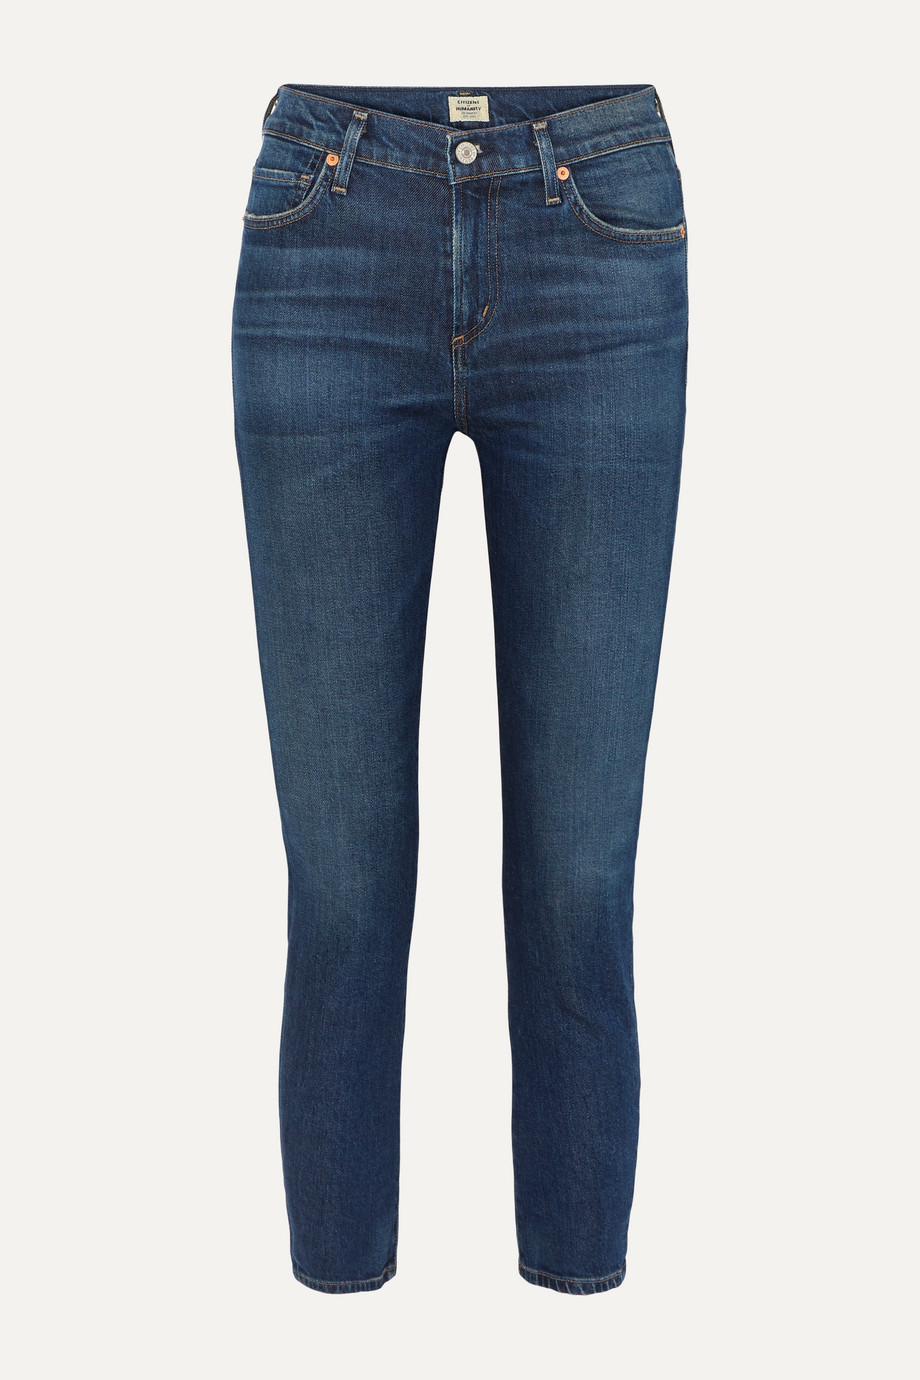 Citizens of Humanity Harlow mid-rise straight-leg jeans